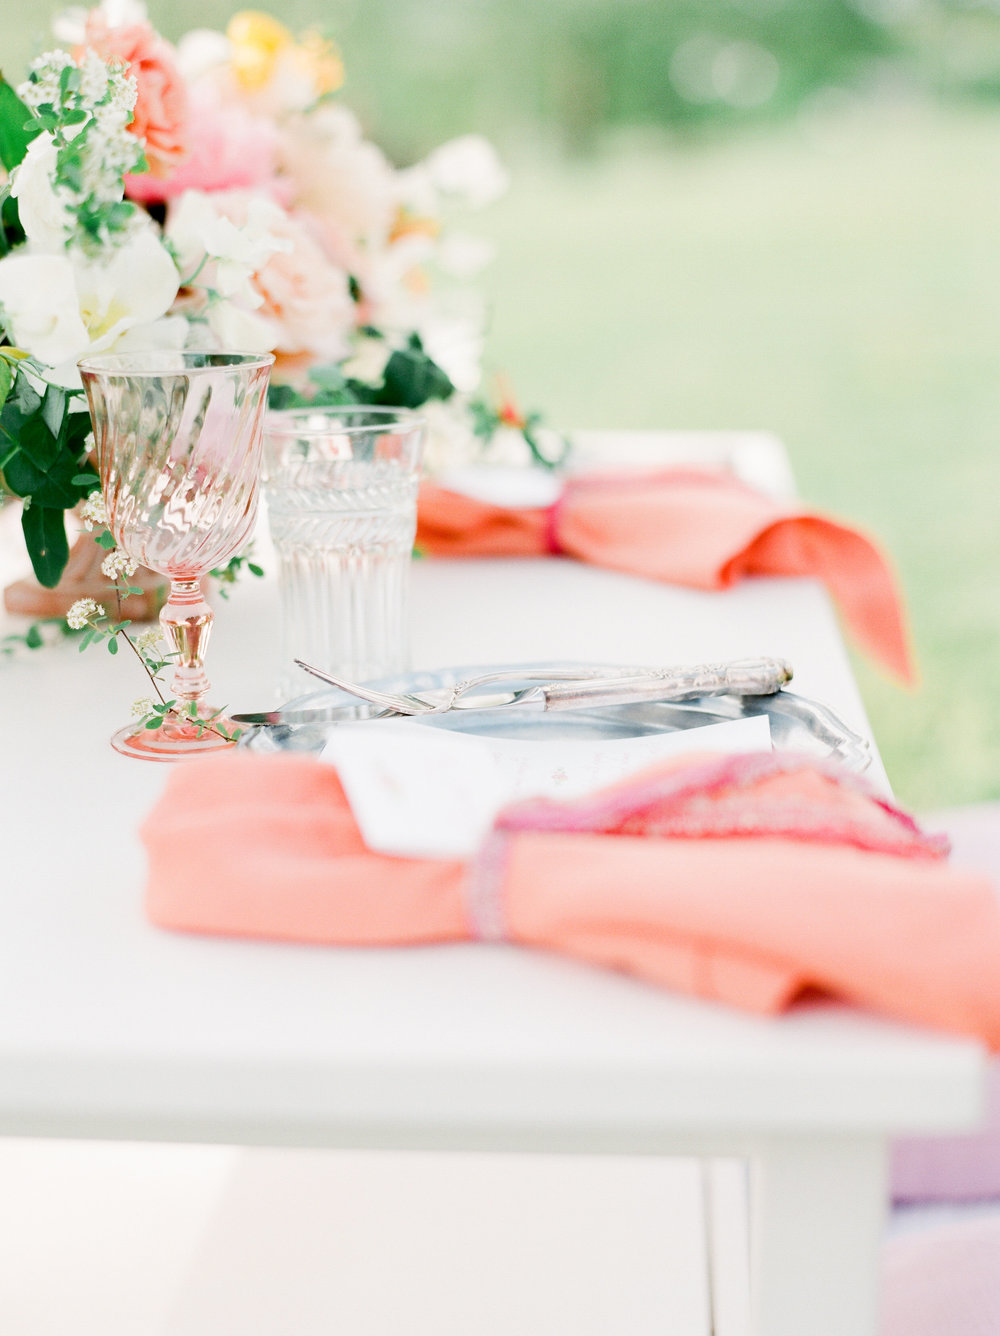 Blush goblet and a linen napkin in a juicy color brings the floral color to the neutral place settings. Paper goods by Designs In Paper. Styling by Feather + Oak. Photo by Julie Paisley. Florals by Petal and Pine.